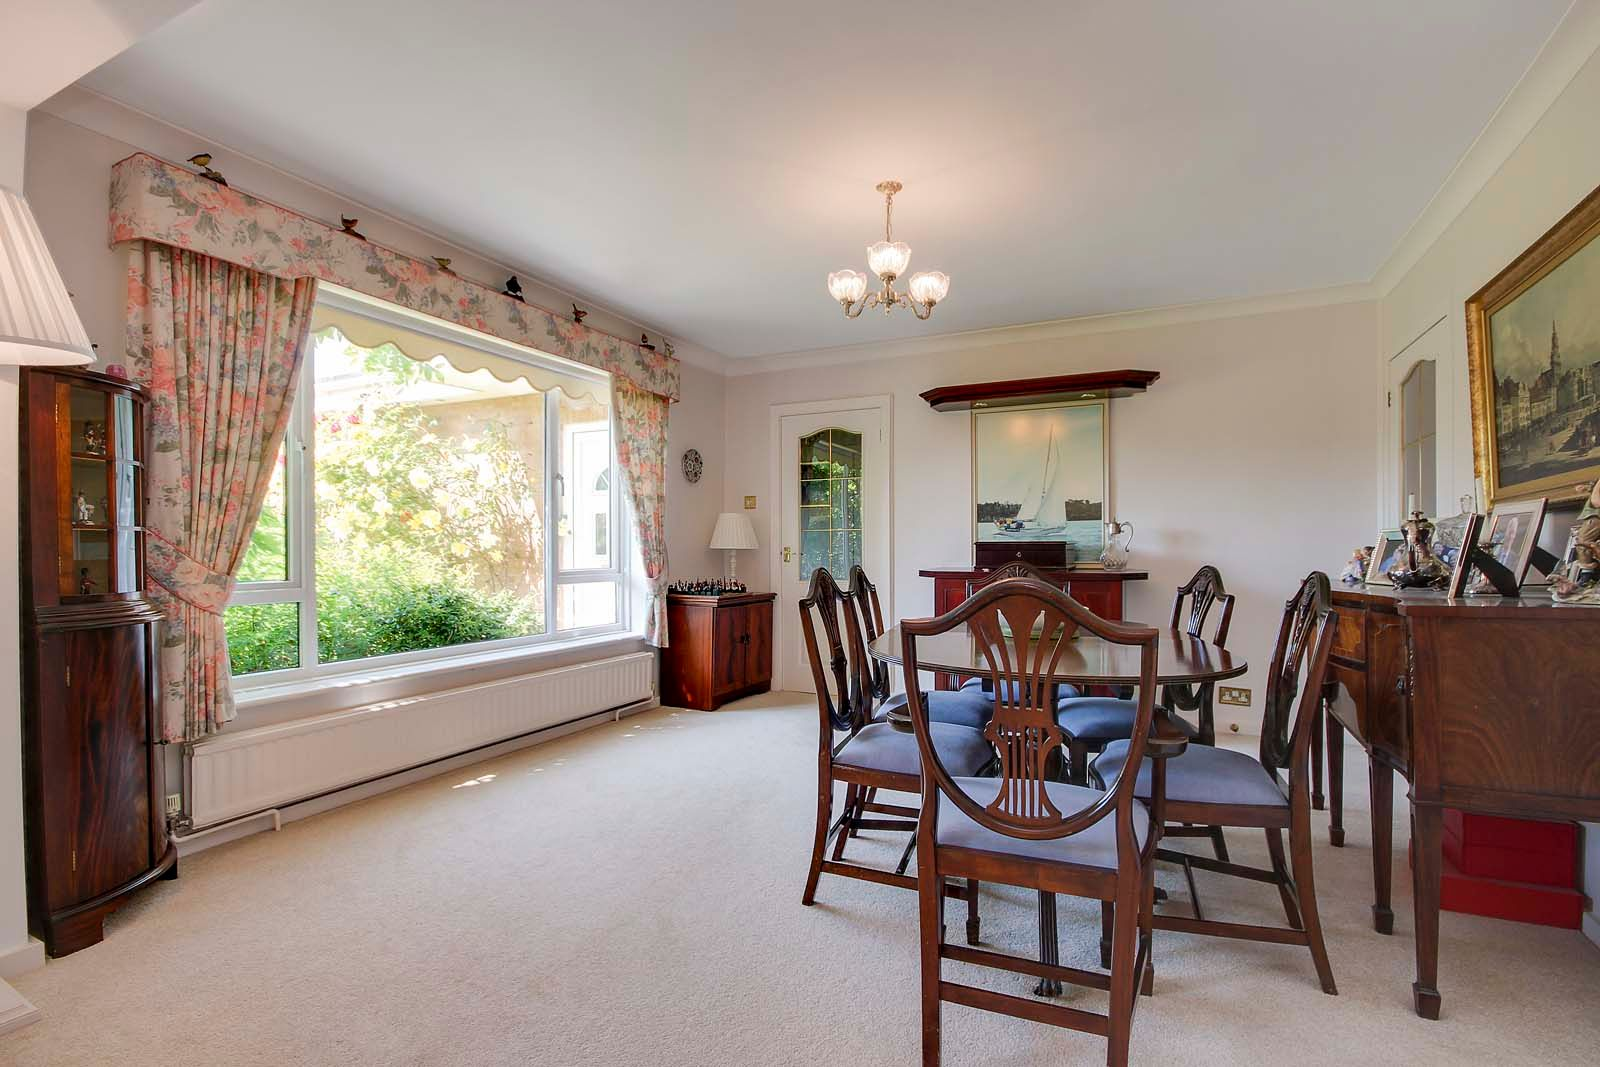 5 bed House for sale in The Willowhayne, East Preston - Dining room (Property Image 5)